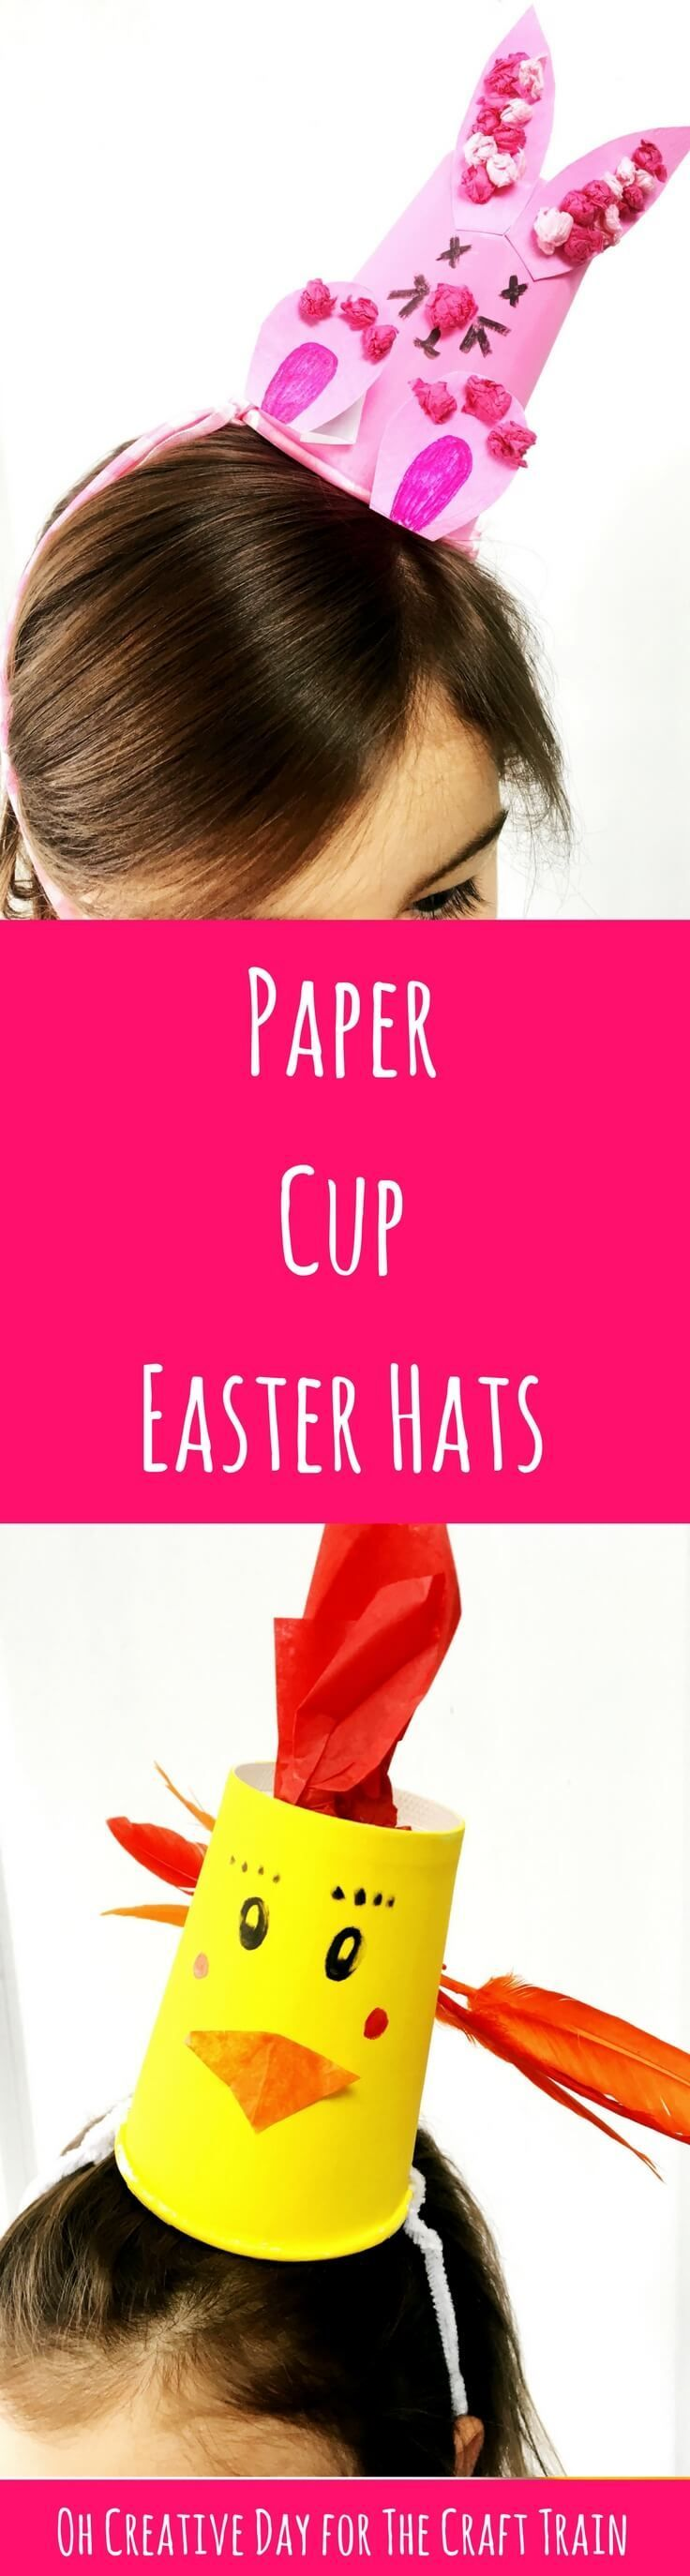 Paper cup Easter hat craft